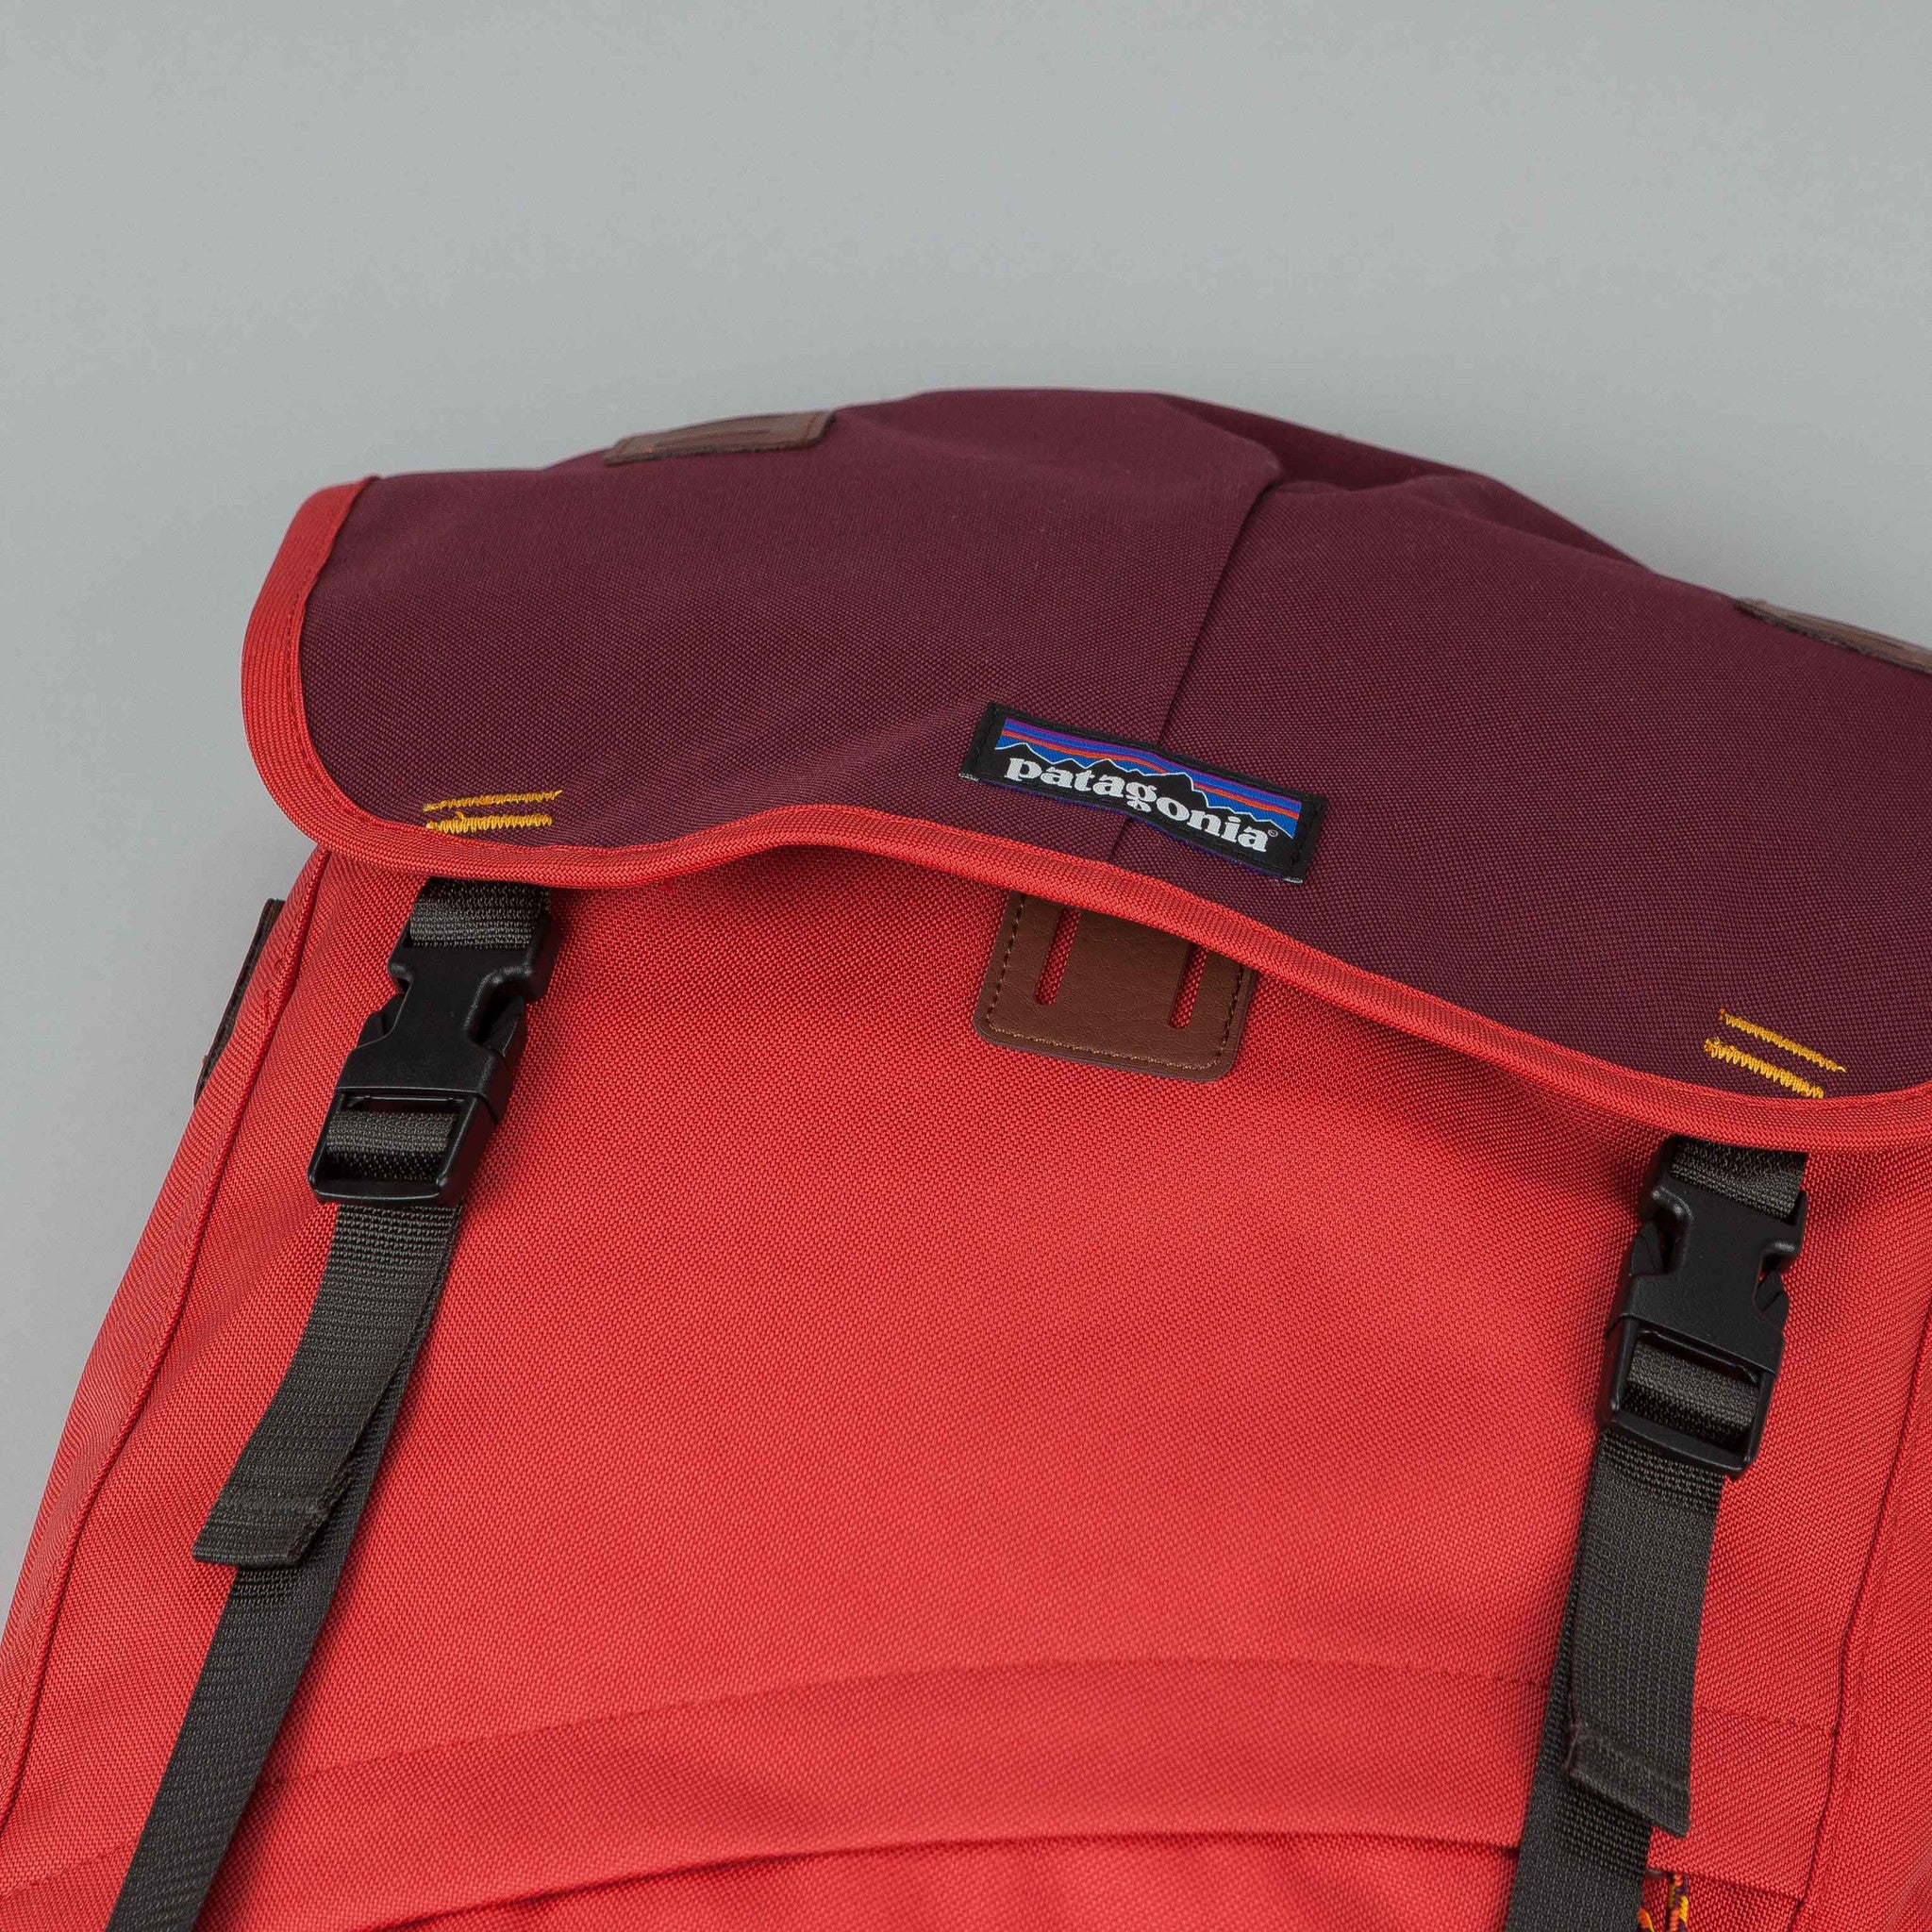 Patagonia Arbor Backpack - Sumac Red